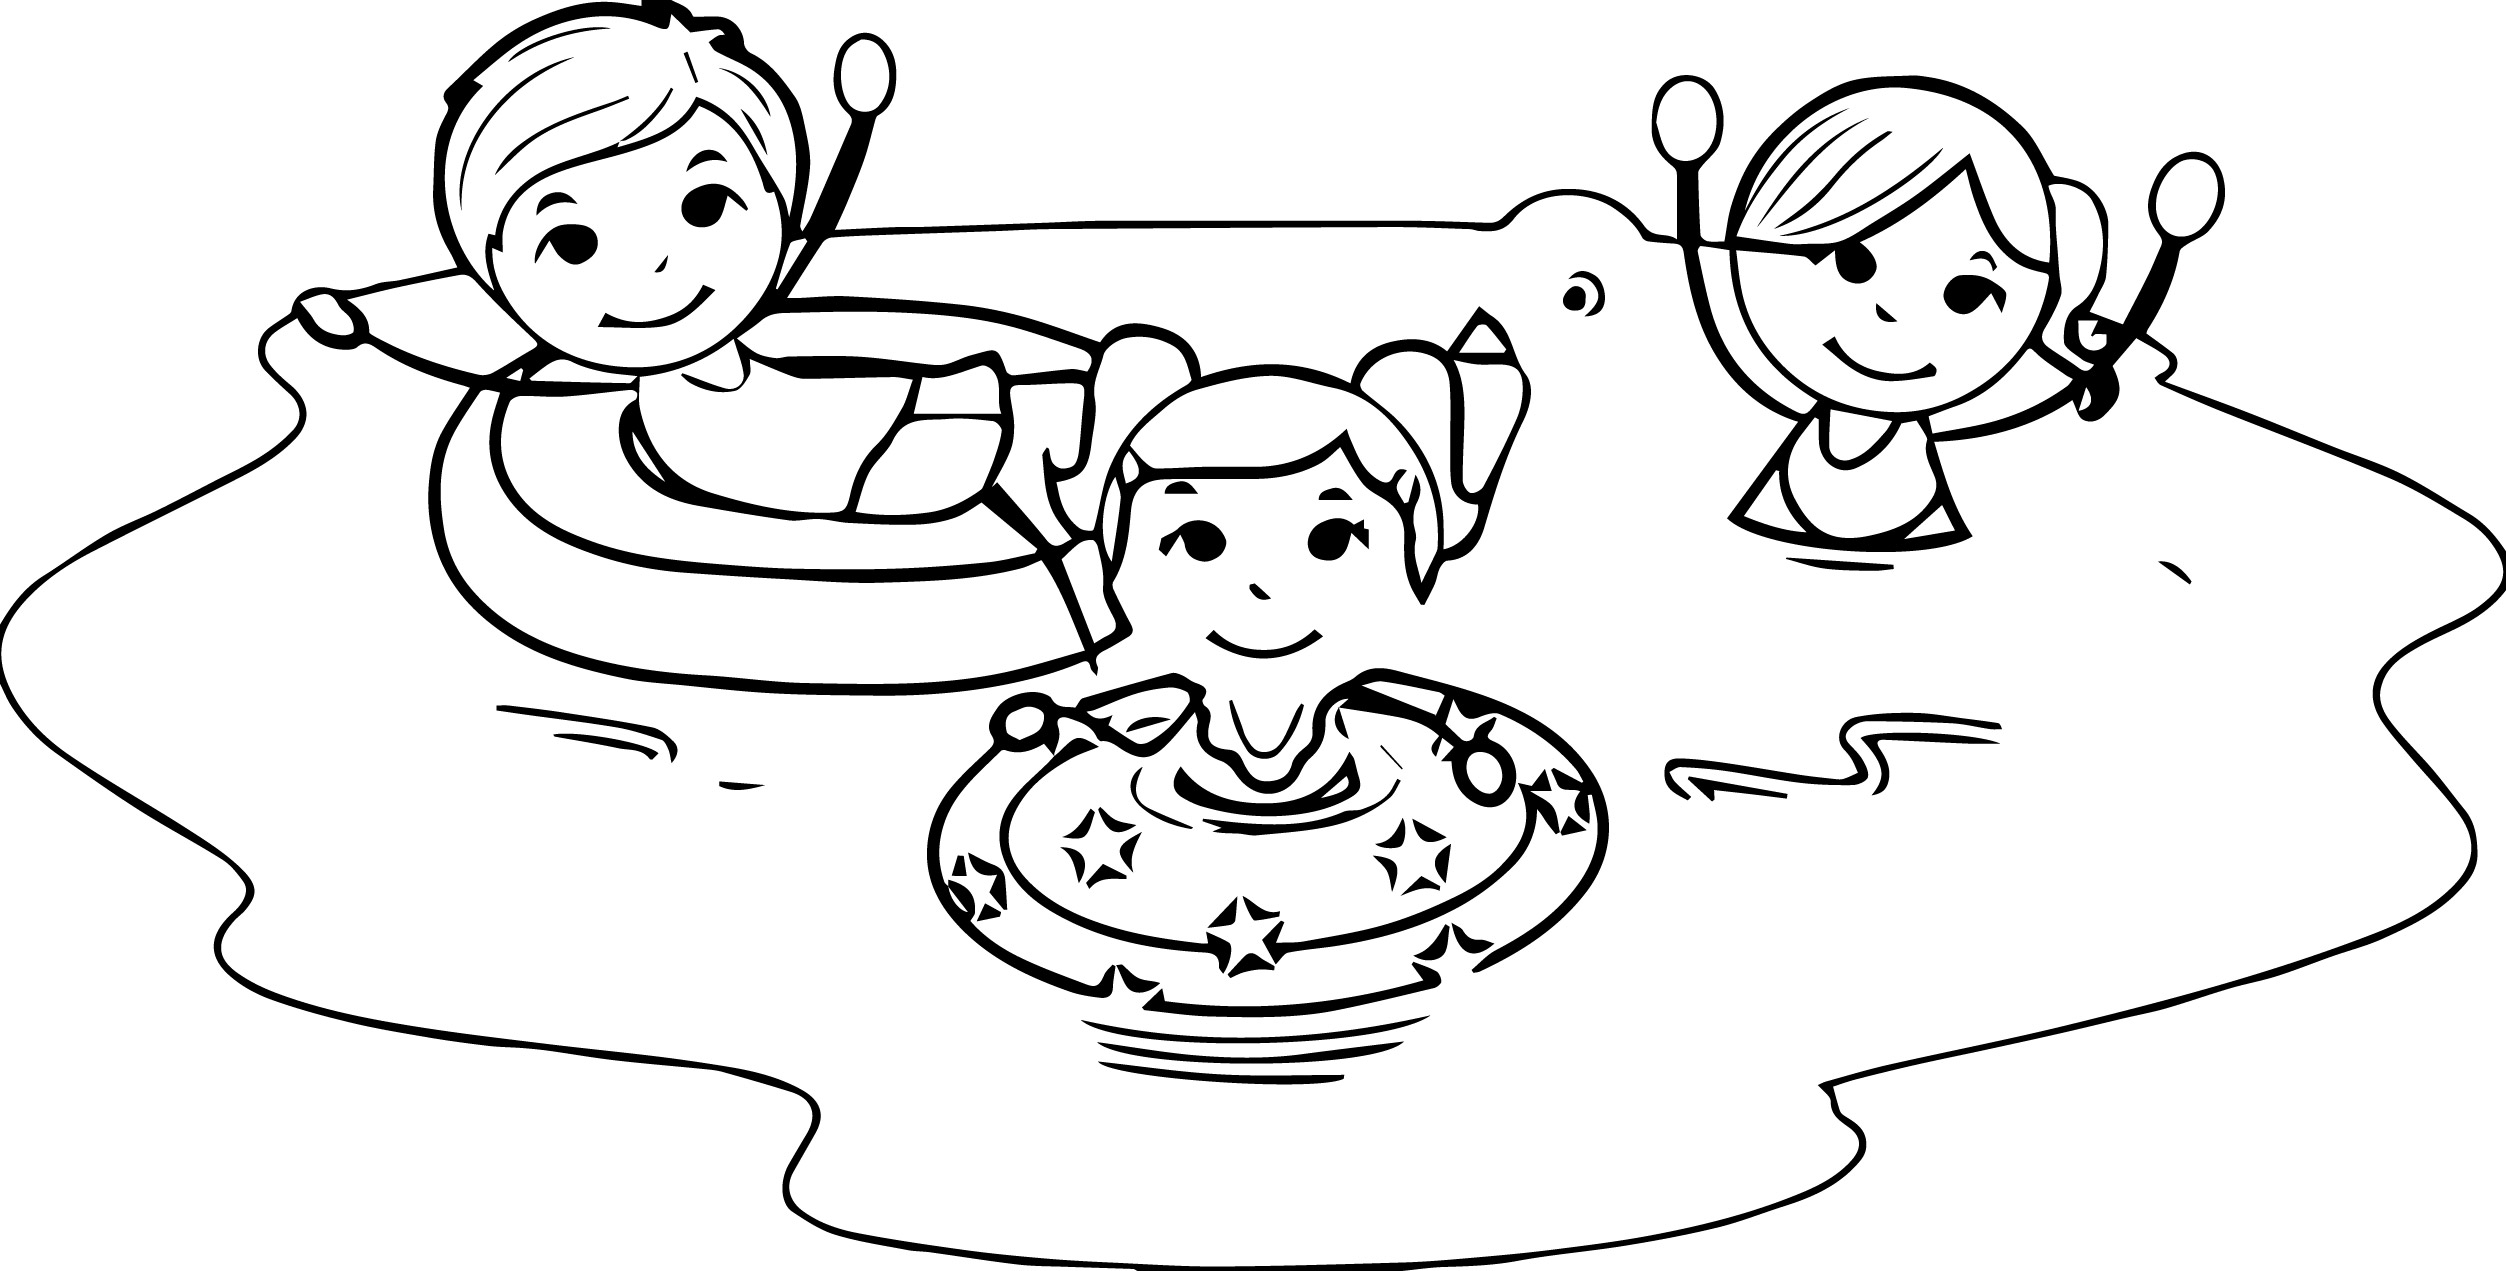 Fun clipart black and white Clipart white summer and clipart